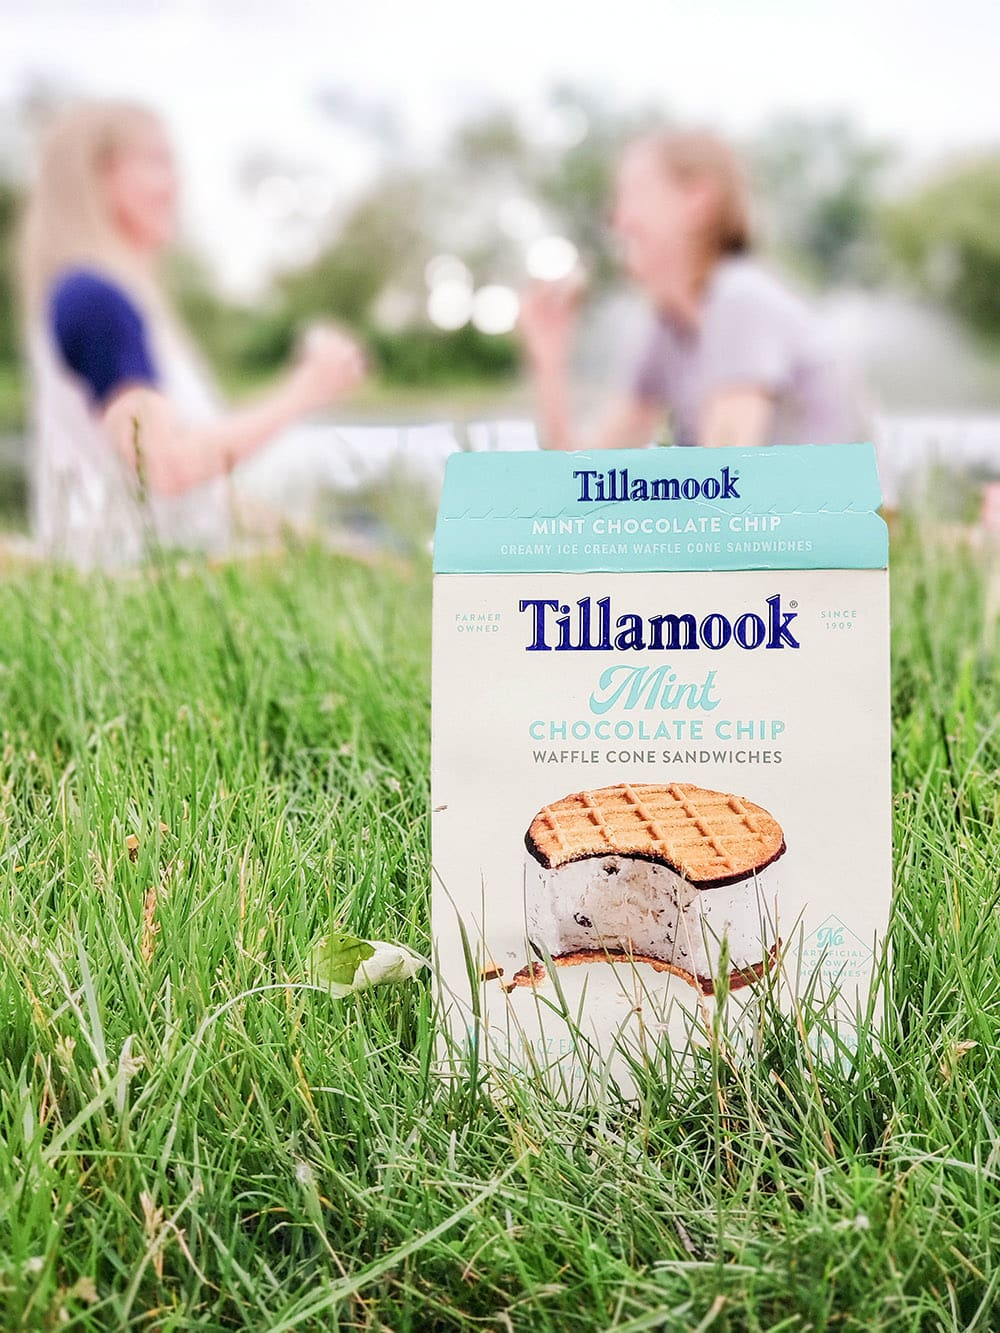 Box of Tillamook with people having a picnic in the background.